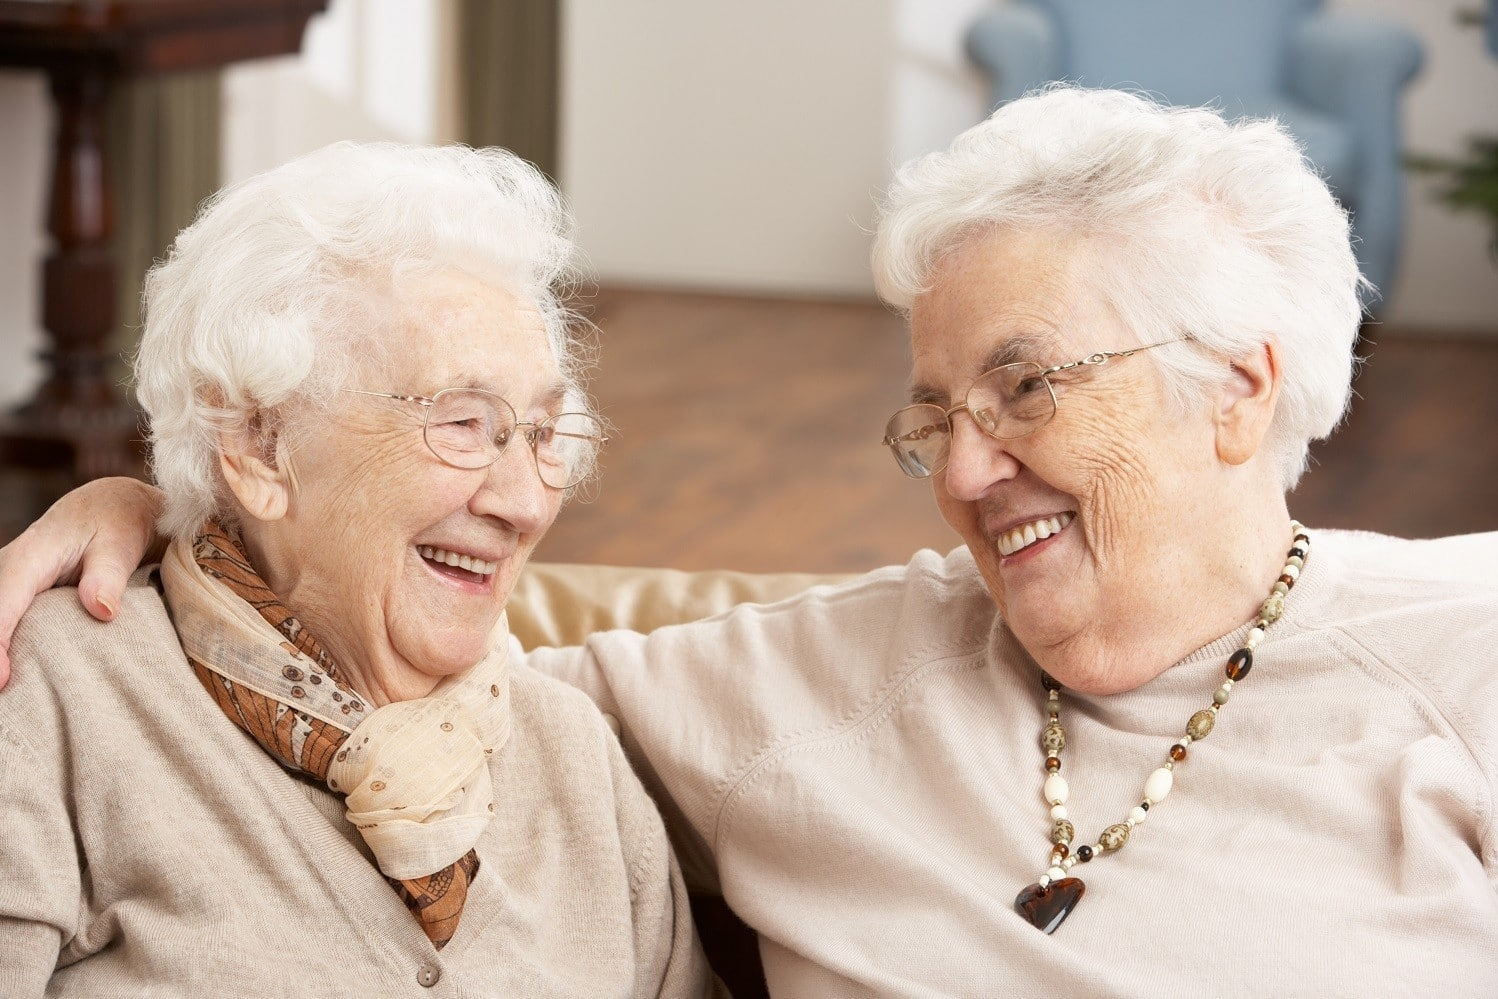 Enjoy luxury senior living lifestyles at our Salisbury community